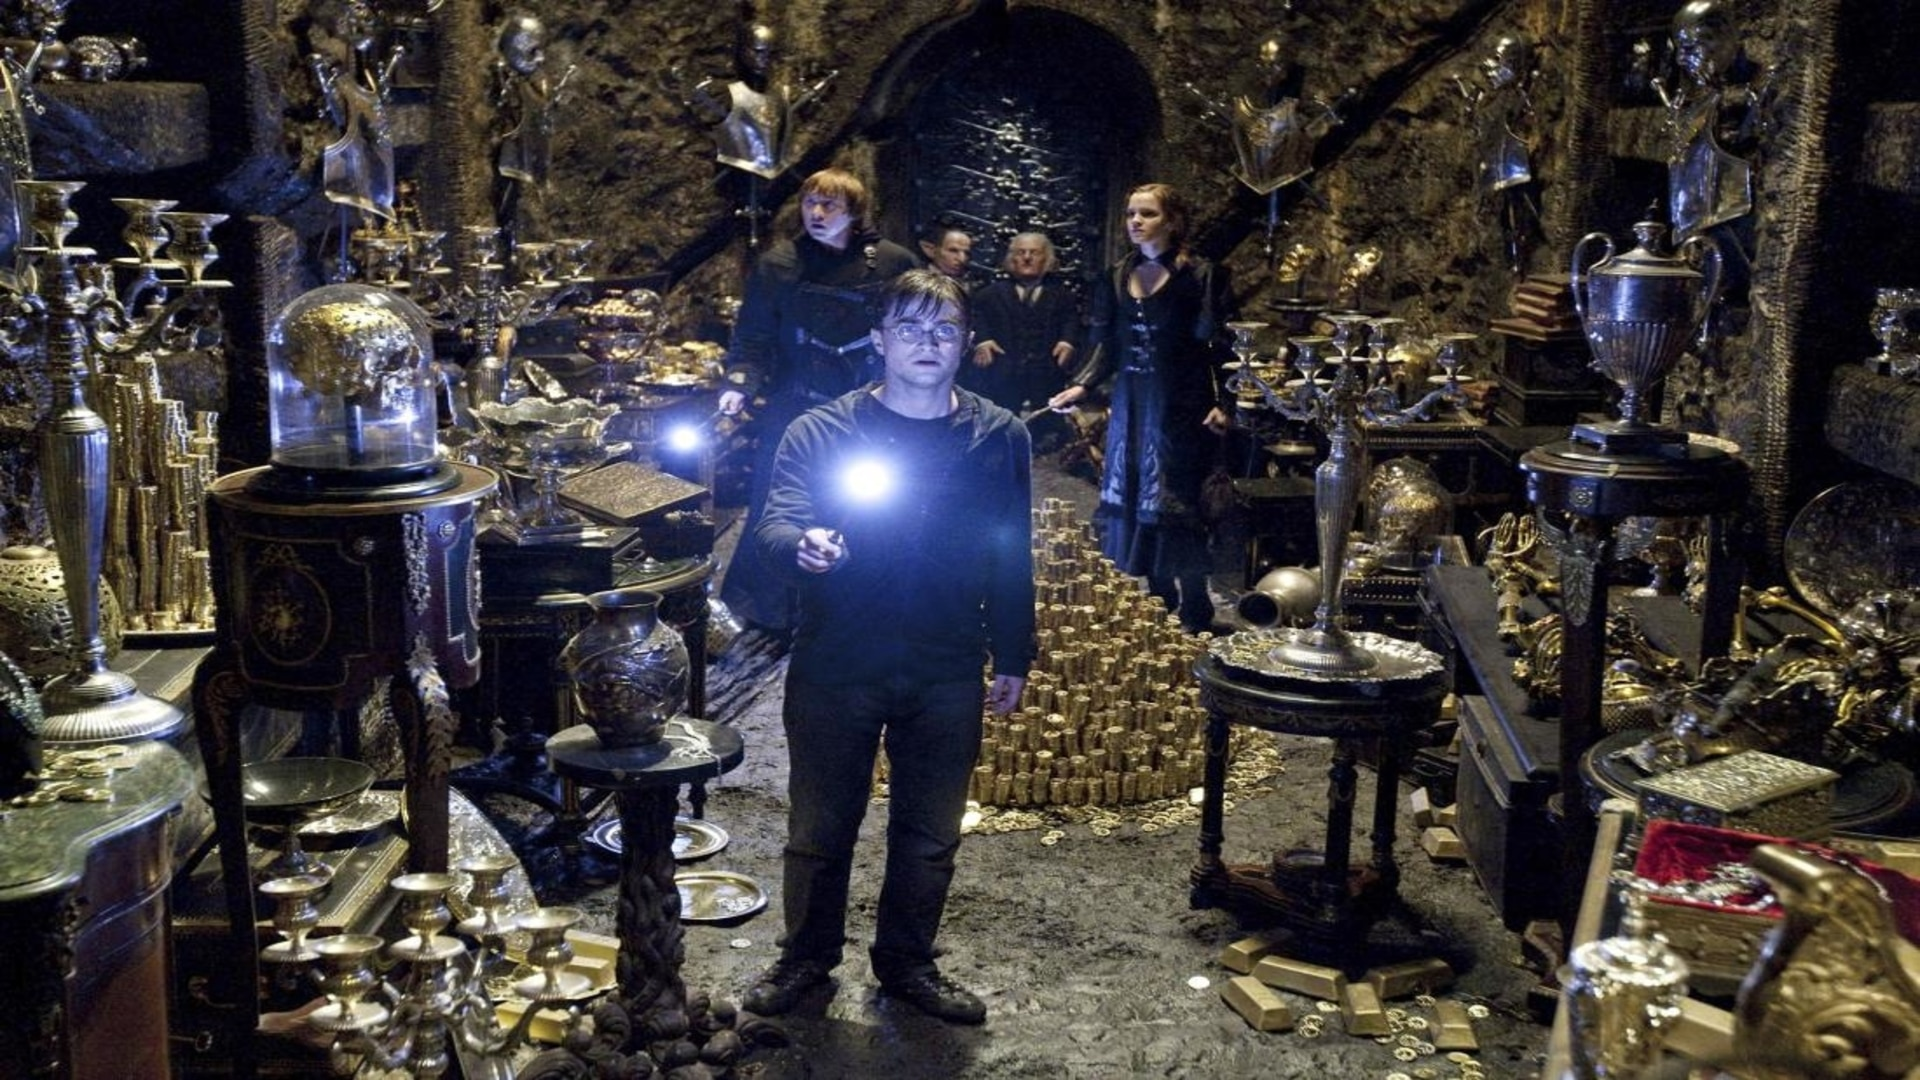 How the Muggle technology could have been better used